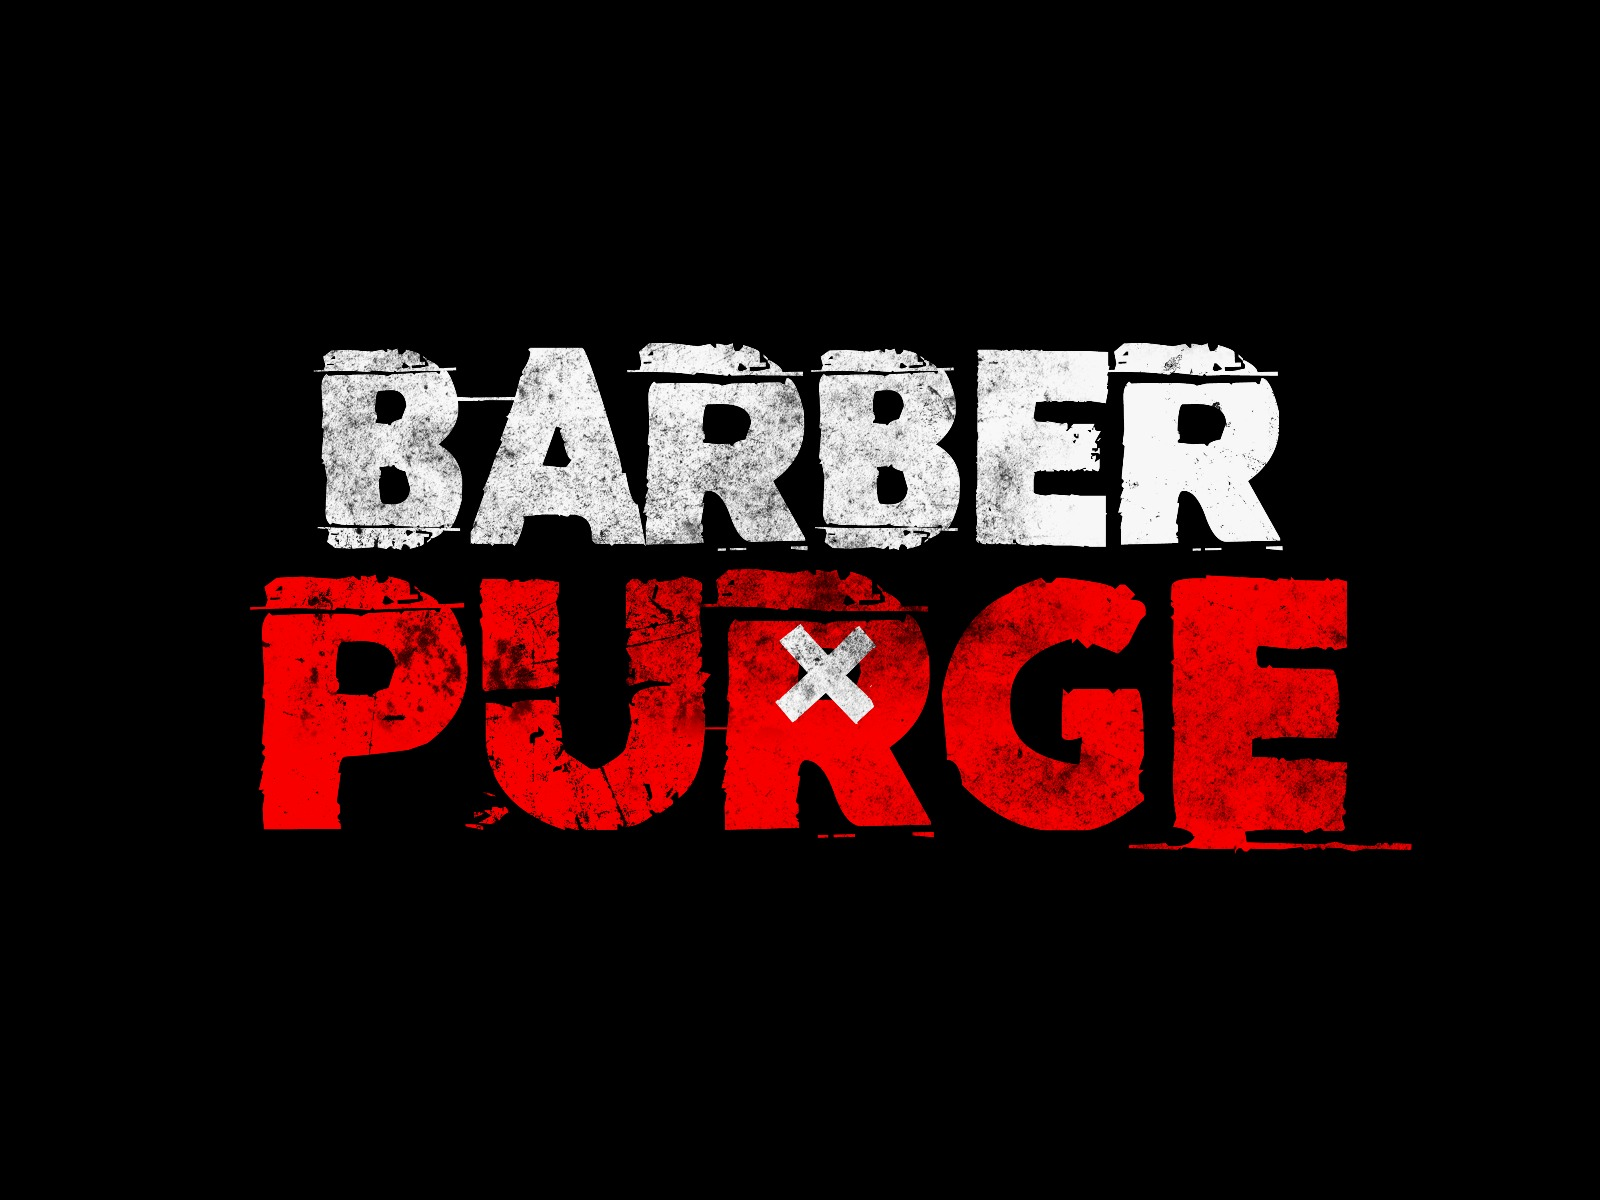 Who Will Survive The Purge? - Heres your chance to show the world the best halloween themed haircut and shoot. Use your creativity to create a whole unique halloween themed haircut and photoshoot/video. You will be judged on everything from haircut, design, color, photo, video and unique creativity. Only one can survive the Barber Purge Who will it be ?Requirements1 Video2 photosHow to SubmitUse Hashtag #BarberPurgeTag @Sharpfade and @StrandTheBrandRules: There are NO RULES!!!You can use color, enhancement, props photoshop, Special FX for video and let your creativity speak.Winner receivesCASH Prize   Strand The Brand Full Package Worth $400   Free Entry to Rise Of Hair 2020 Worth $250  Over $1000 in Prize!!!End Date: October 18th 2019